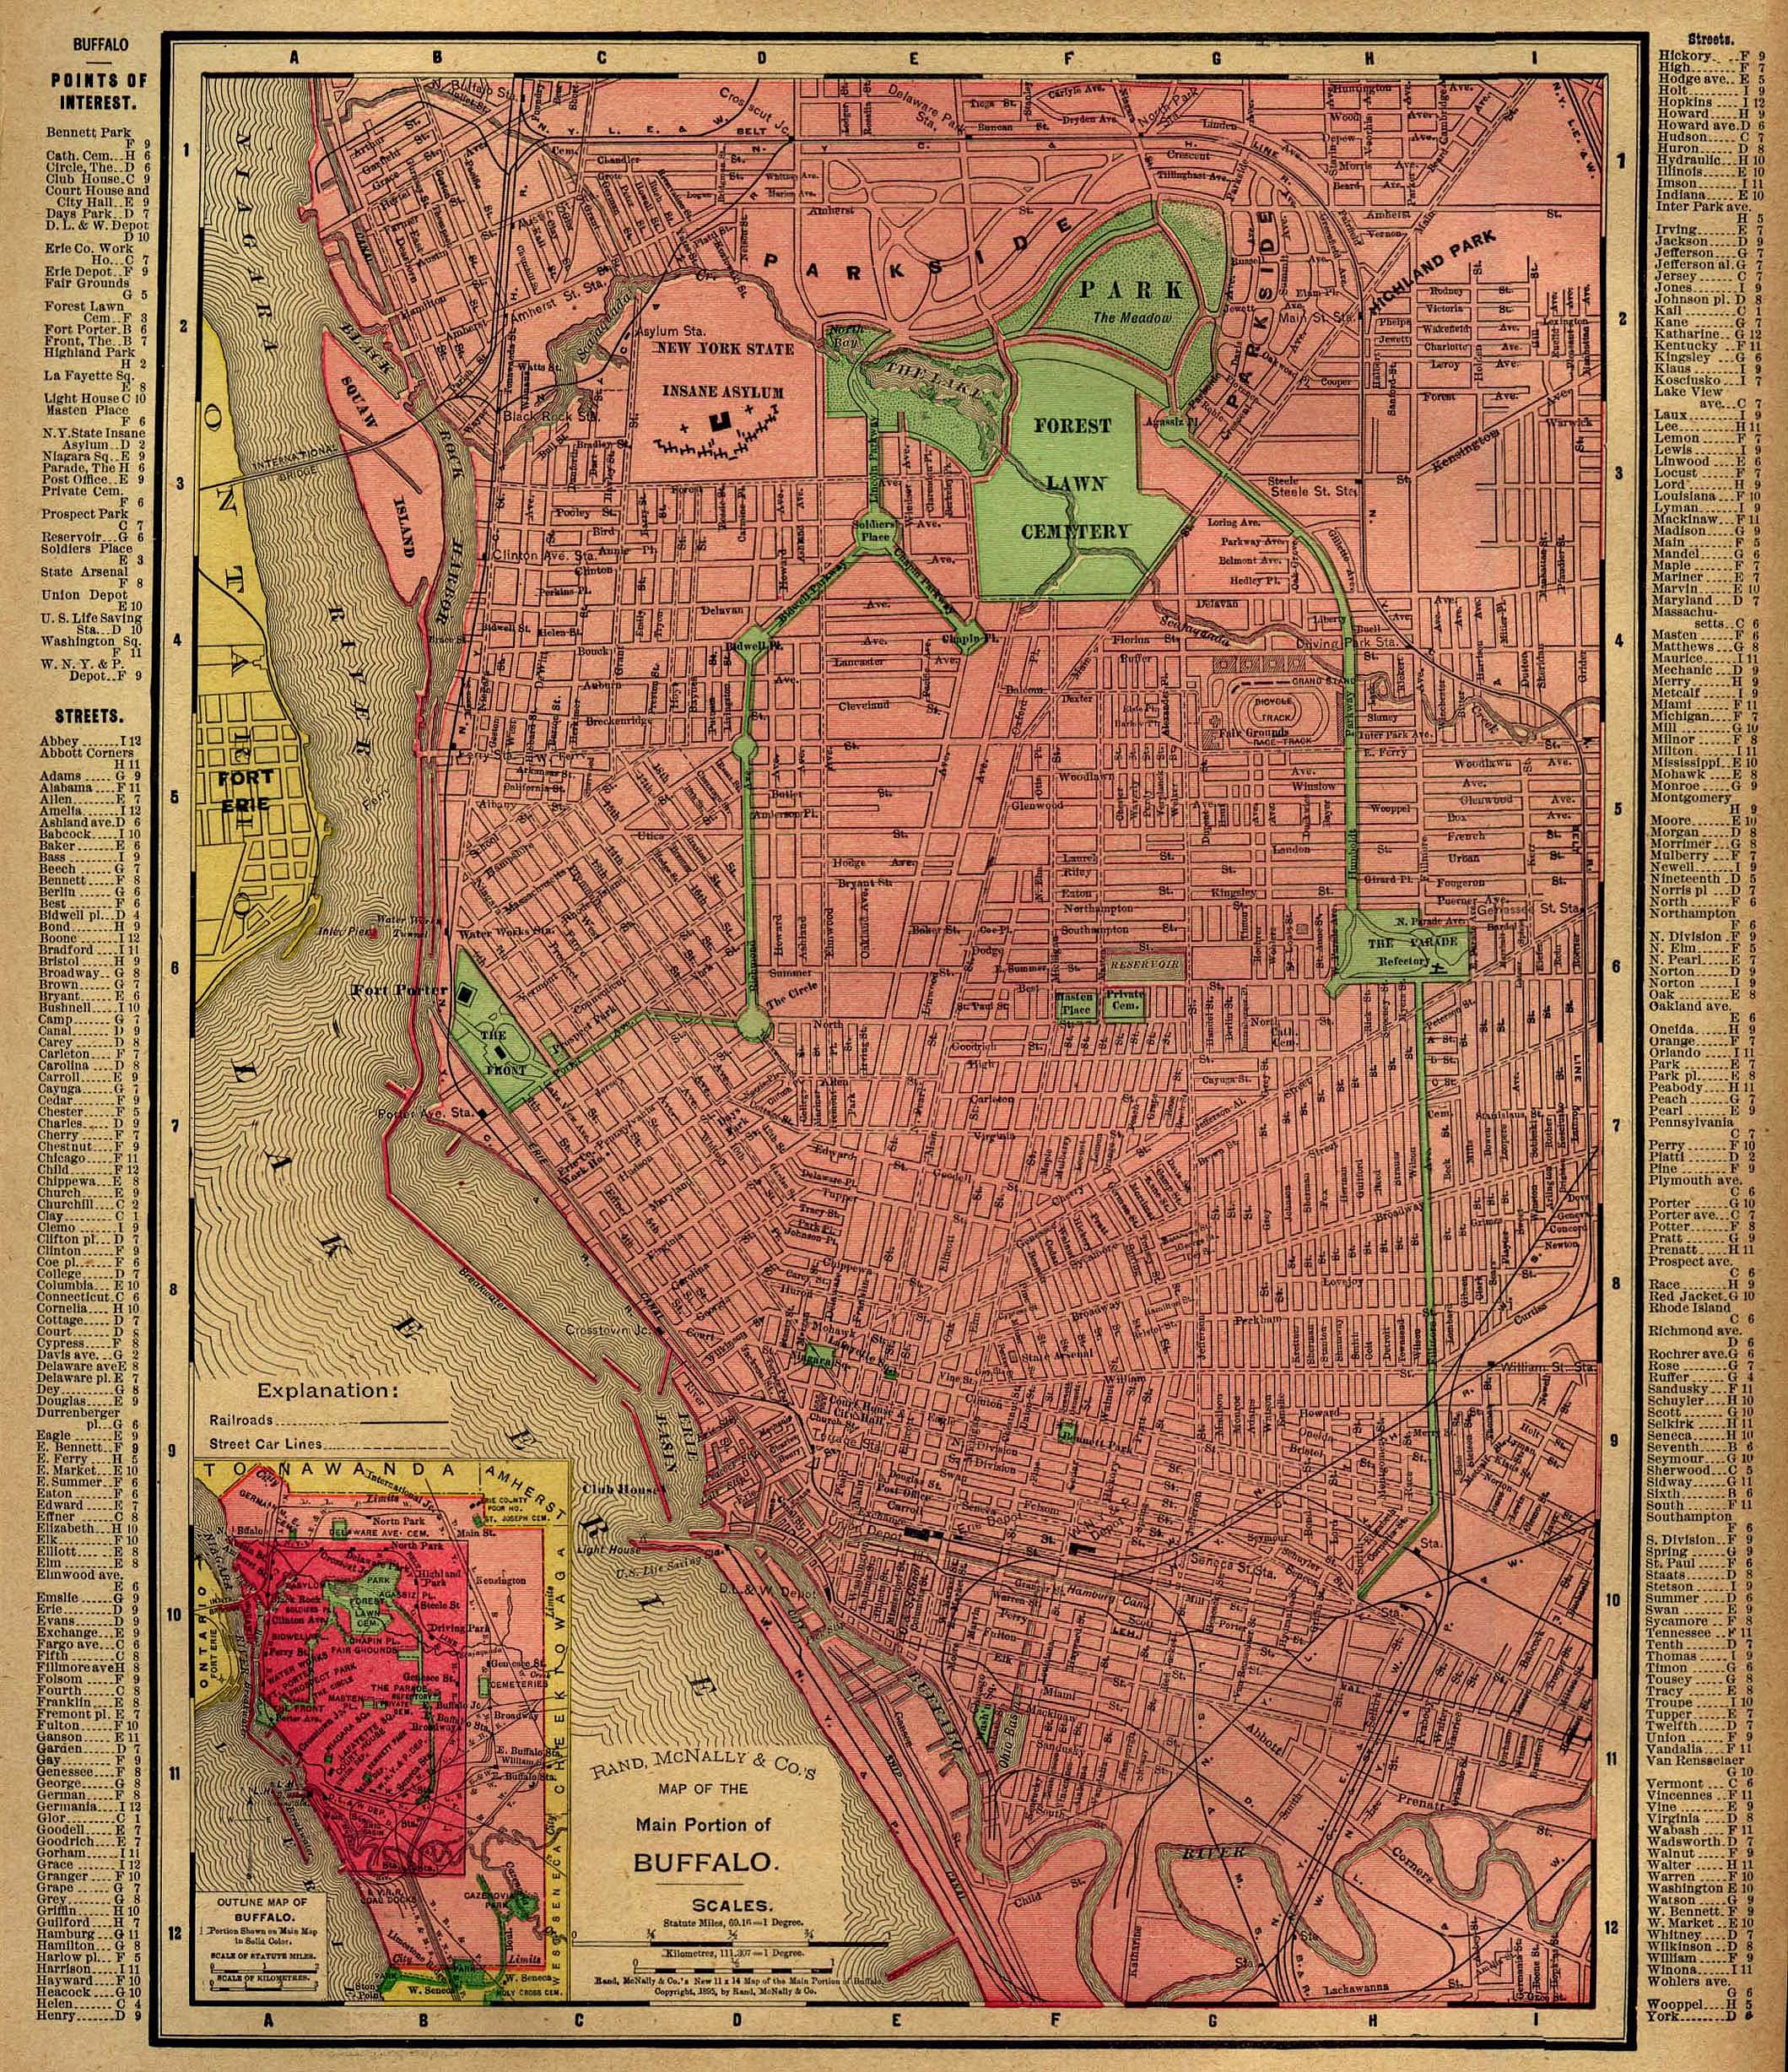 New York Map 1800.Buffaloresearch Com Historic Maps Of Buffalo Erie